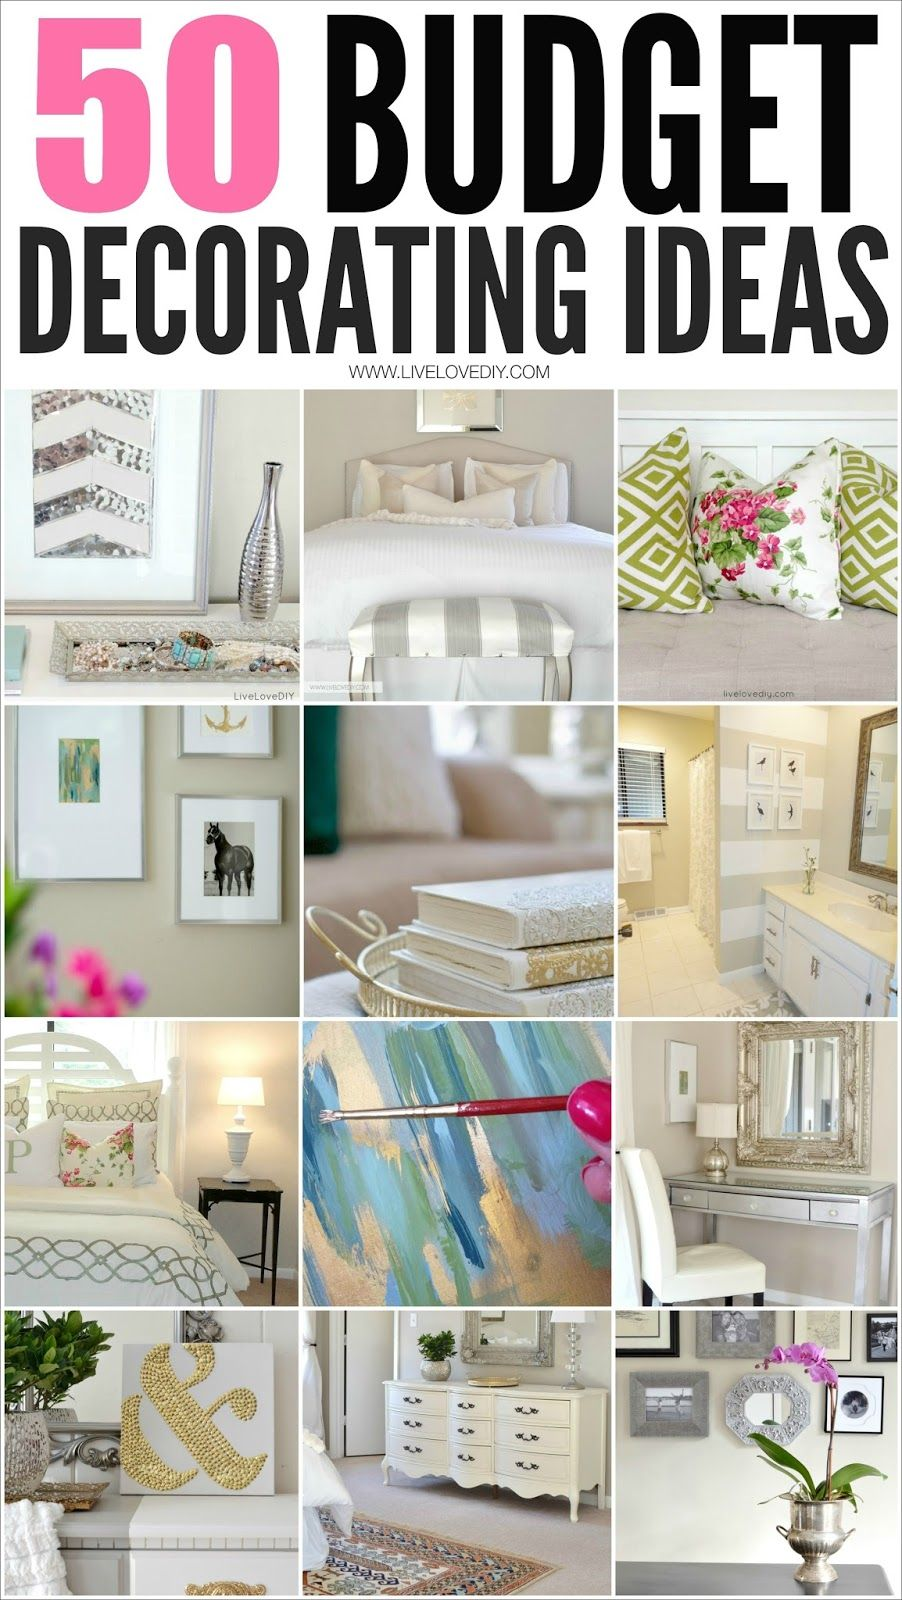 Inexpensive Decorating Ideas 50 budget decorating tips you should know! - livelovediy | home